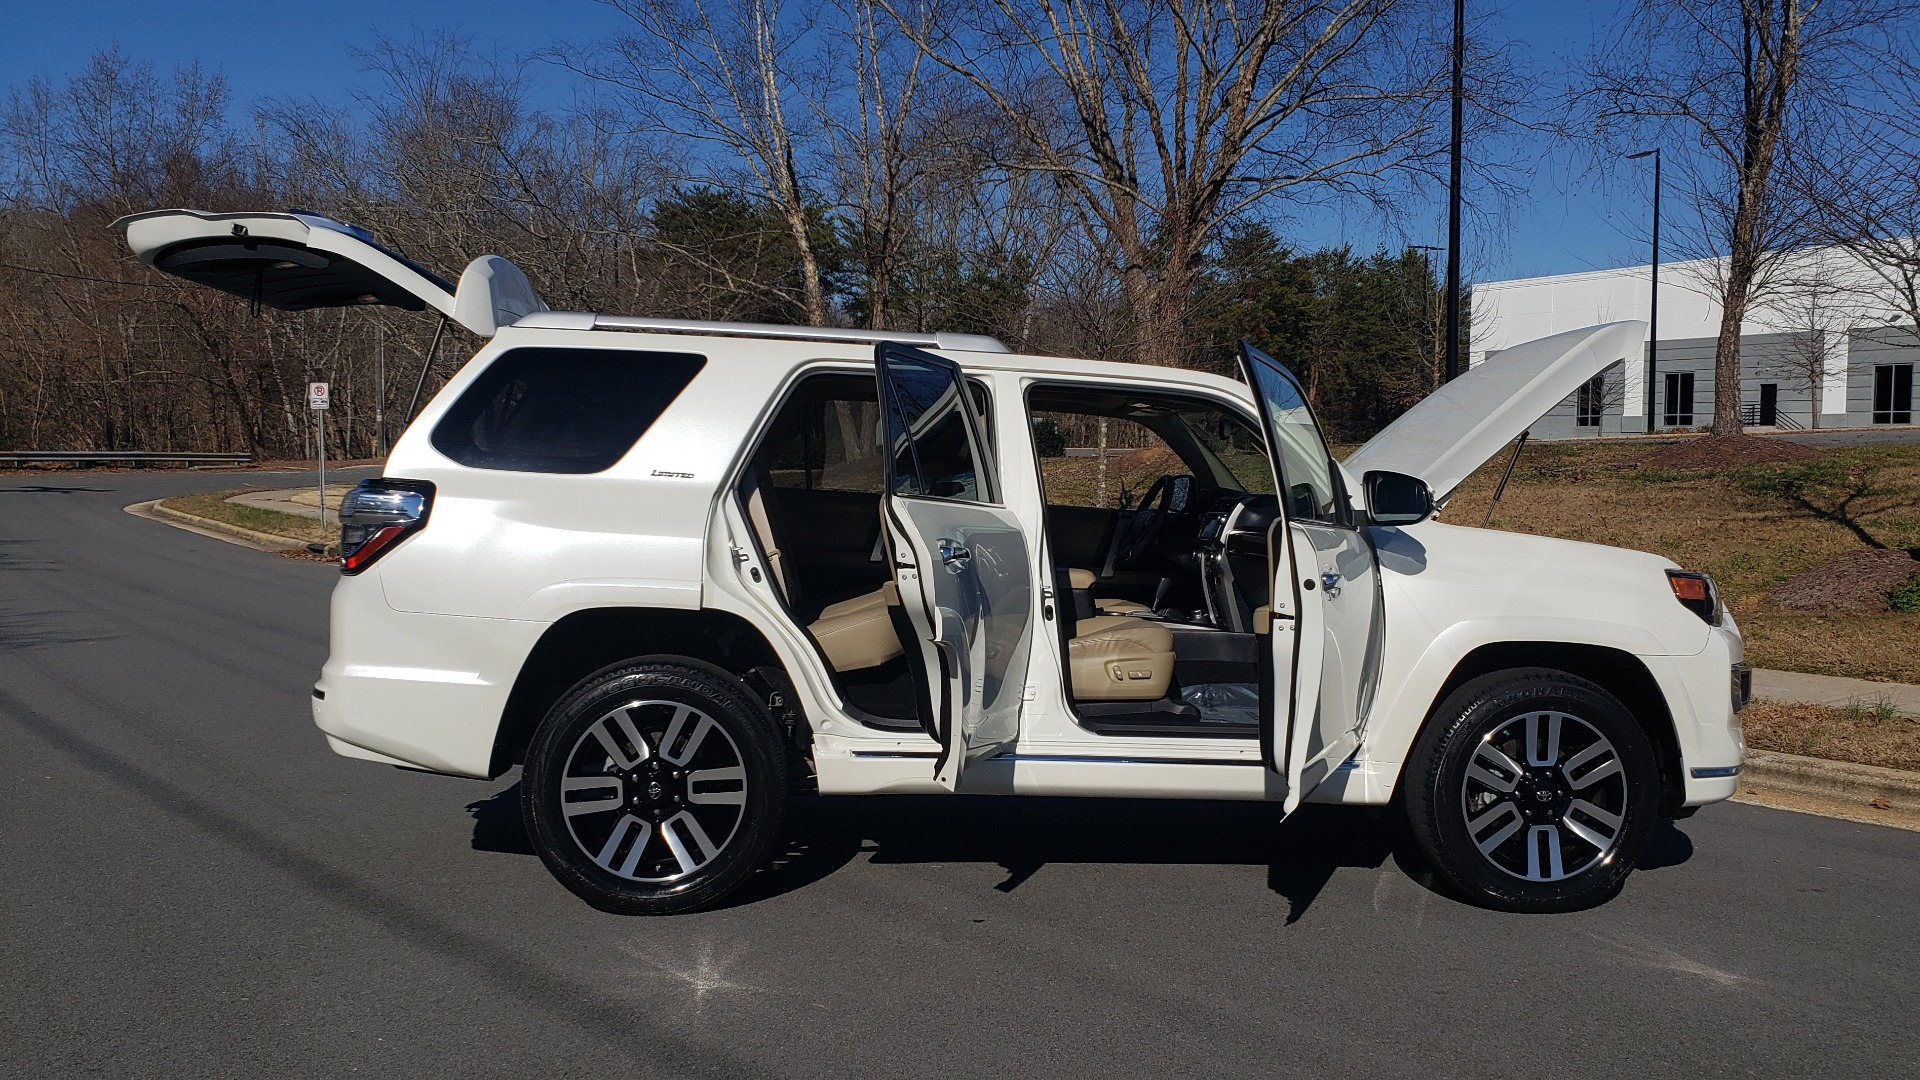 Used 2018 Toyota 4RUNNER LIMITED 4X4 / 4.0L V6 / AUTO / NAV / SUNROOF / JBL AUDIO / REARVIEW for sale Sold at Formula Imports in Charlotte NC 28227 9